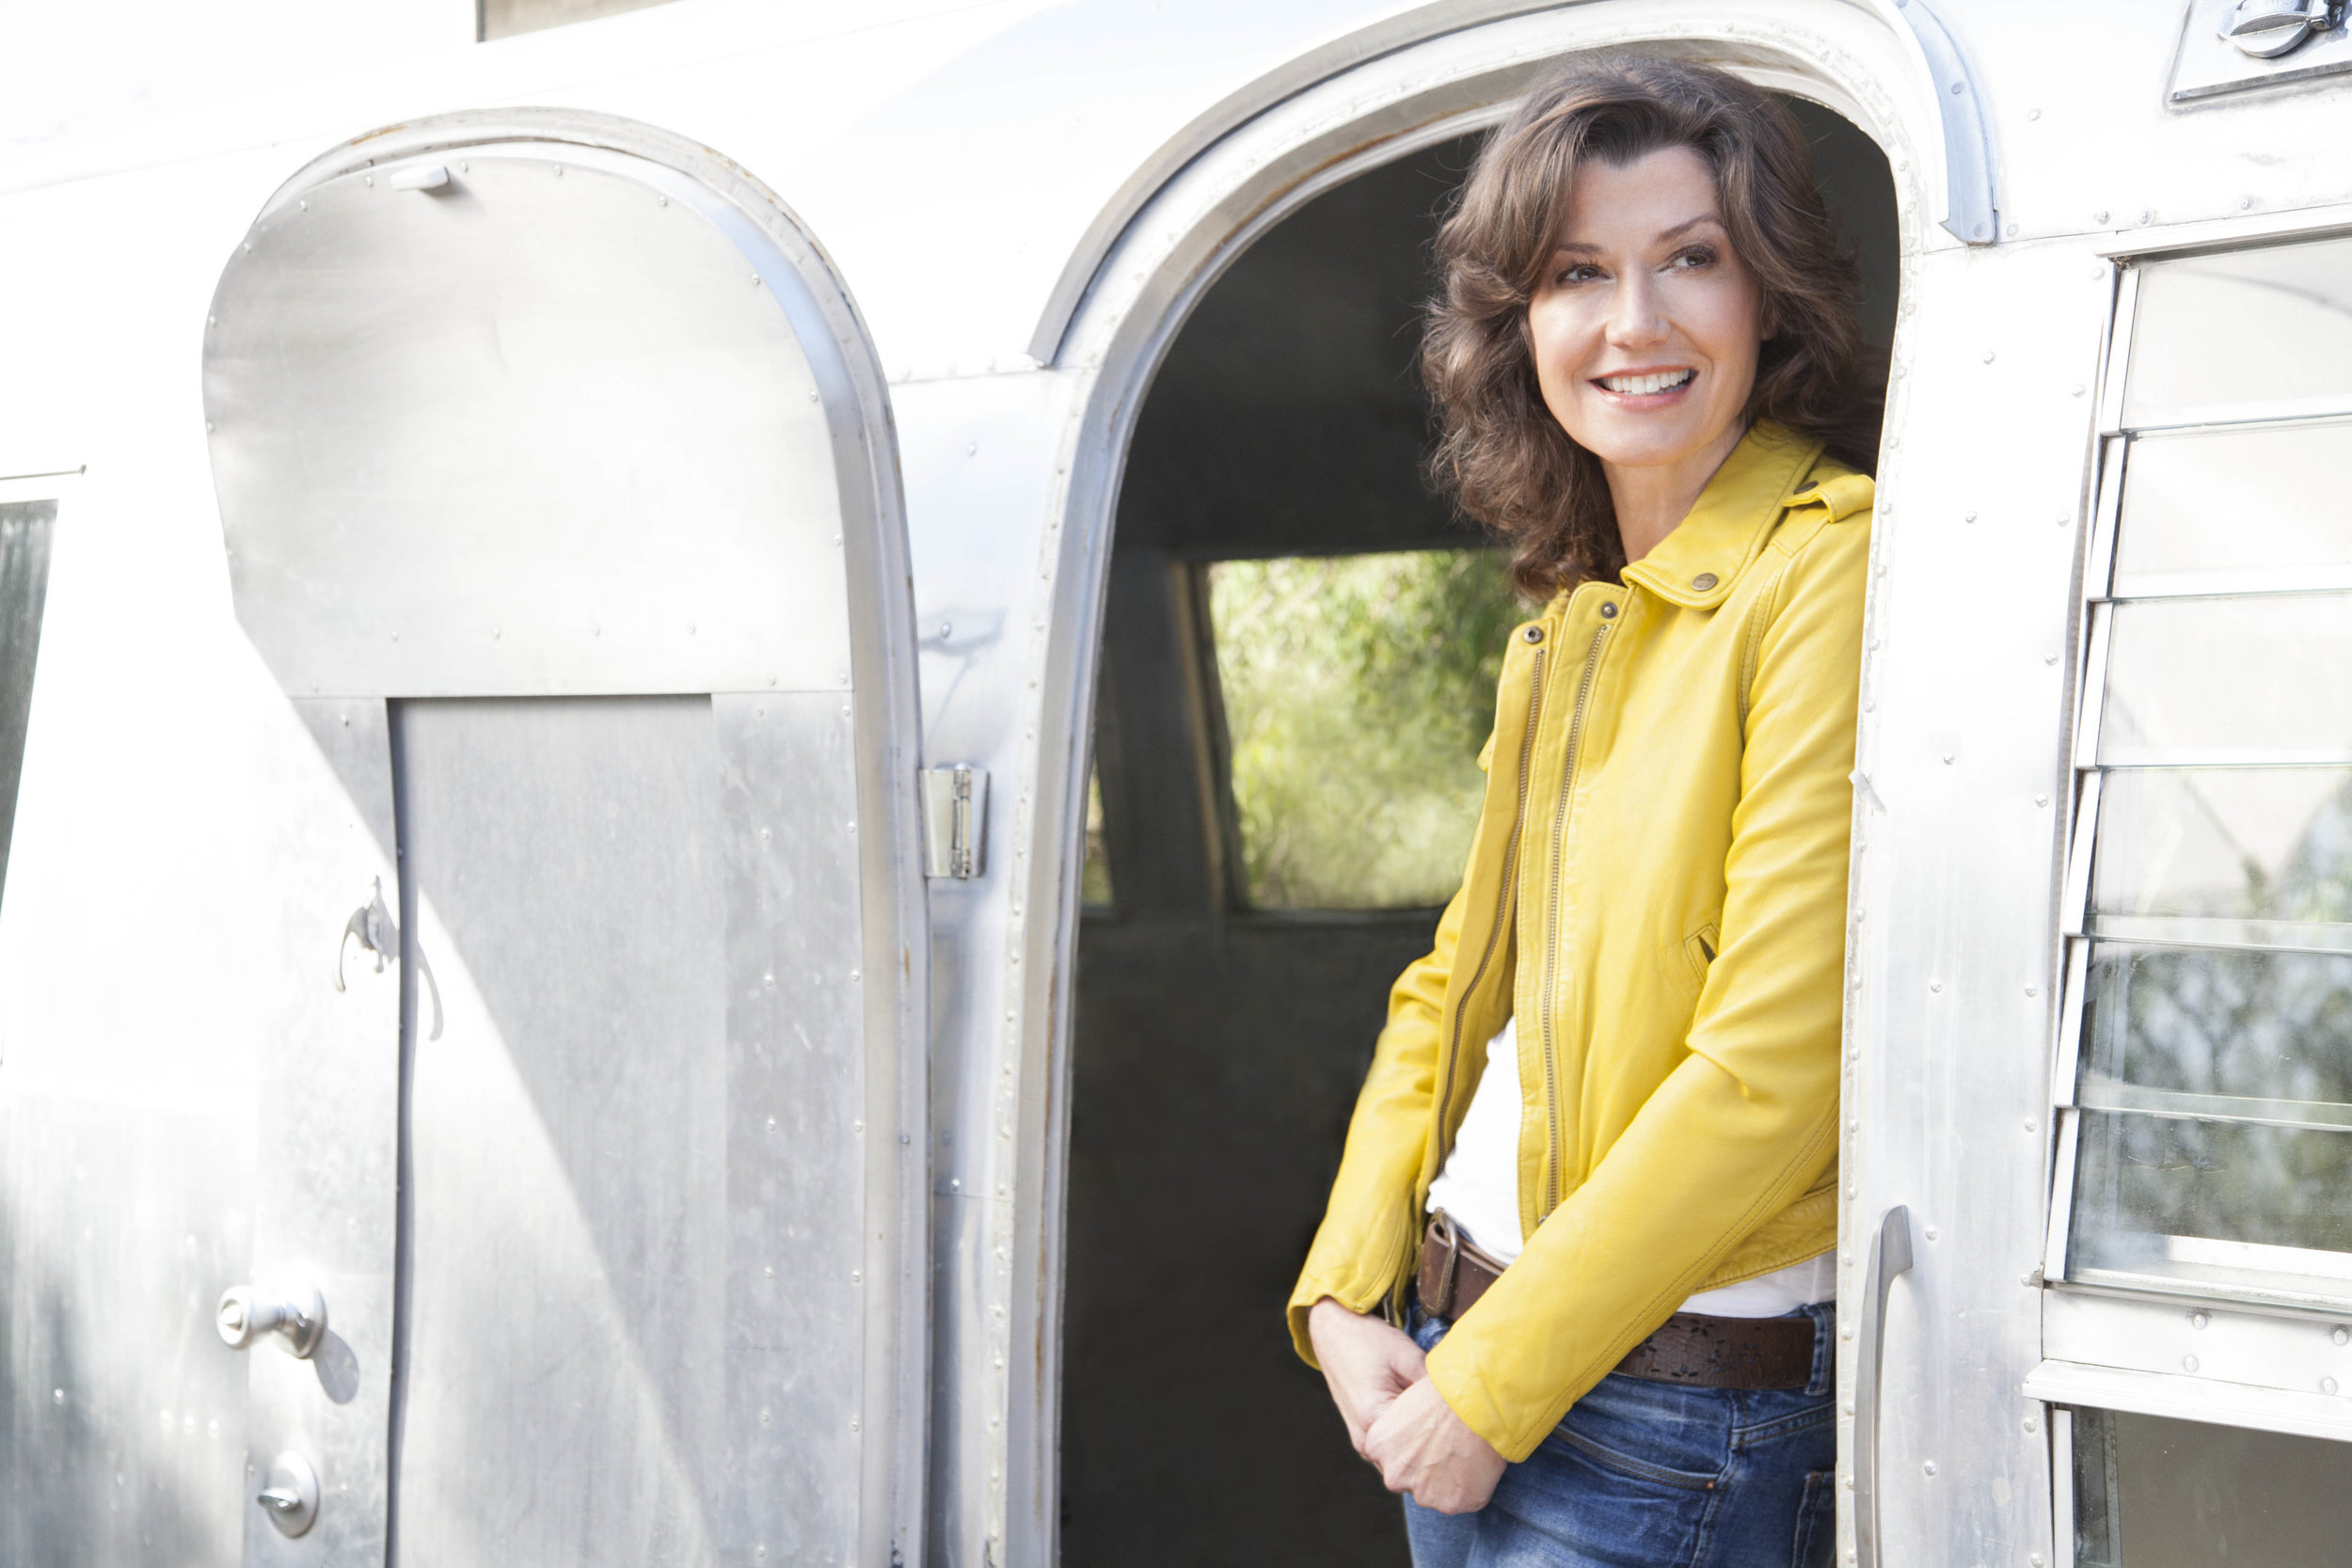 "Amy Grant on HFC: - ""Whew, what a great organization,"" said Grant. ""I wasn't familiar with it before I came on board to do this show, but I love being a part of it."" The faith-based organization, which has operated for more than 20 years, is looking to raise money to improve its facilities and expand its mission."" Click to read the full article."